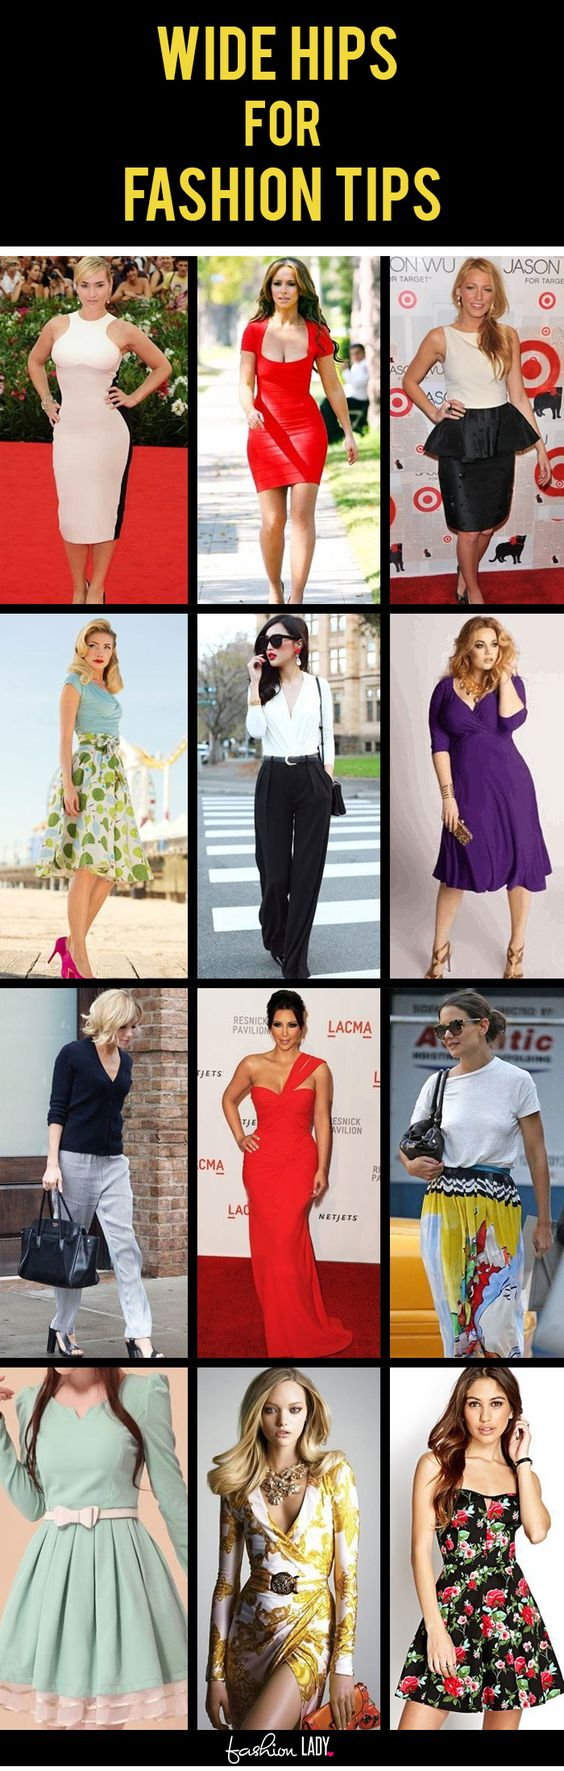 Fashion Tips For Wide Hips: What To And What Not To Wear For Wide Hips